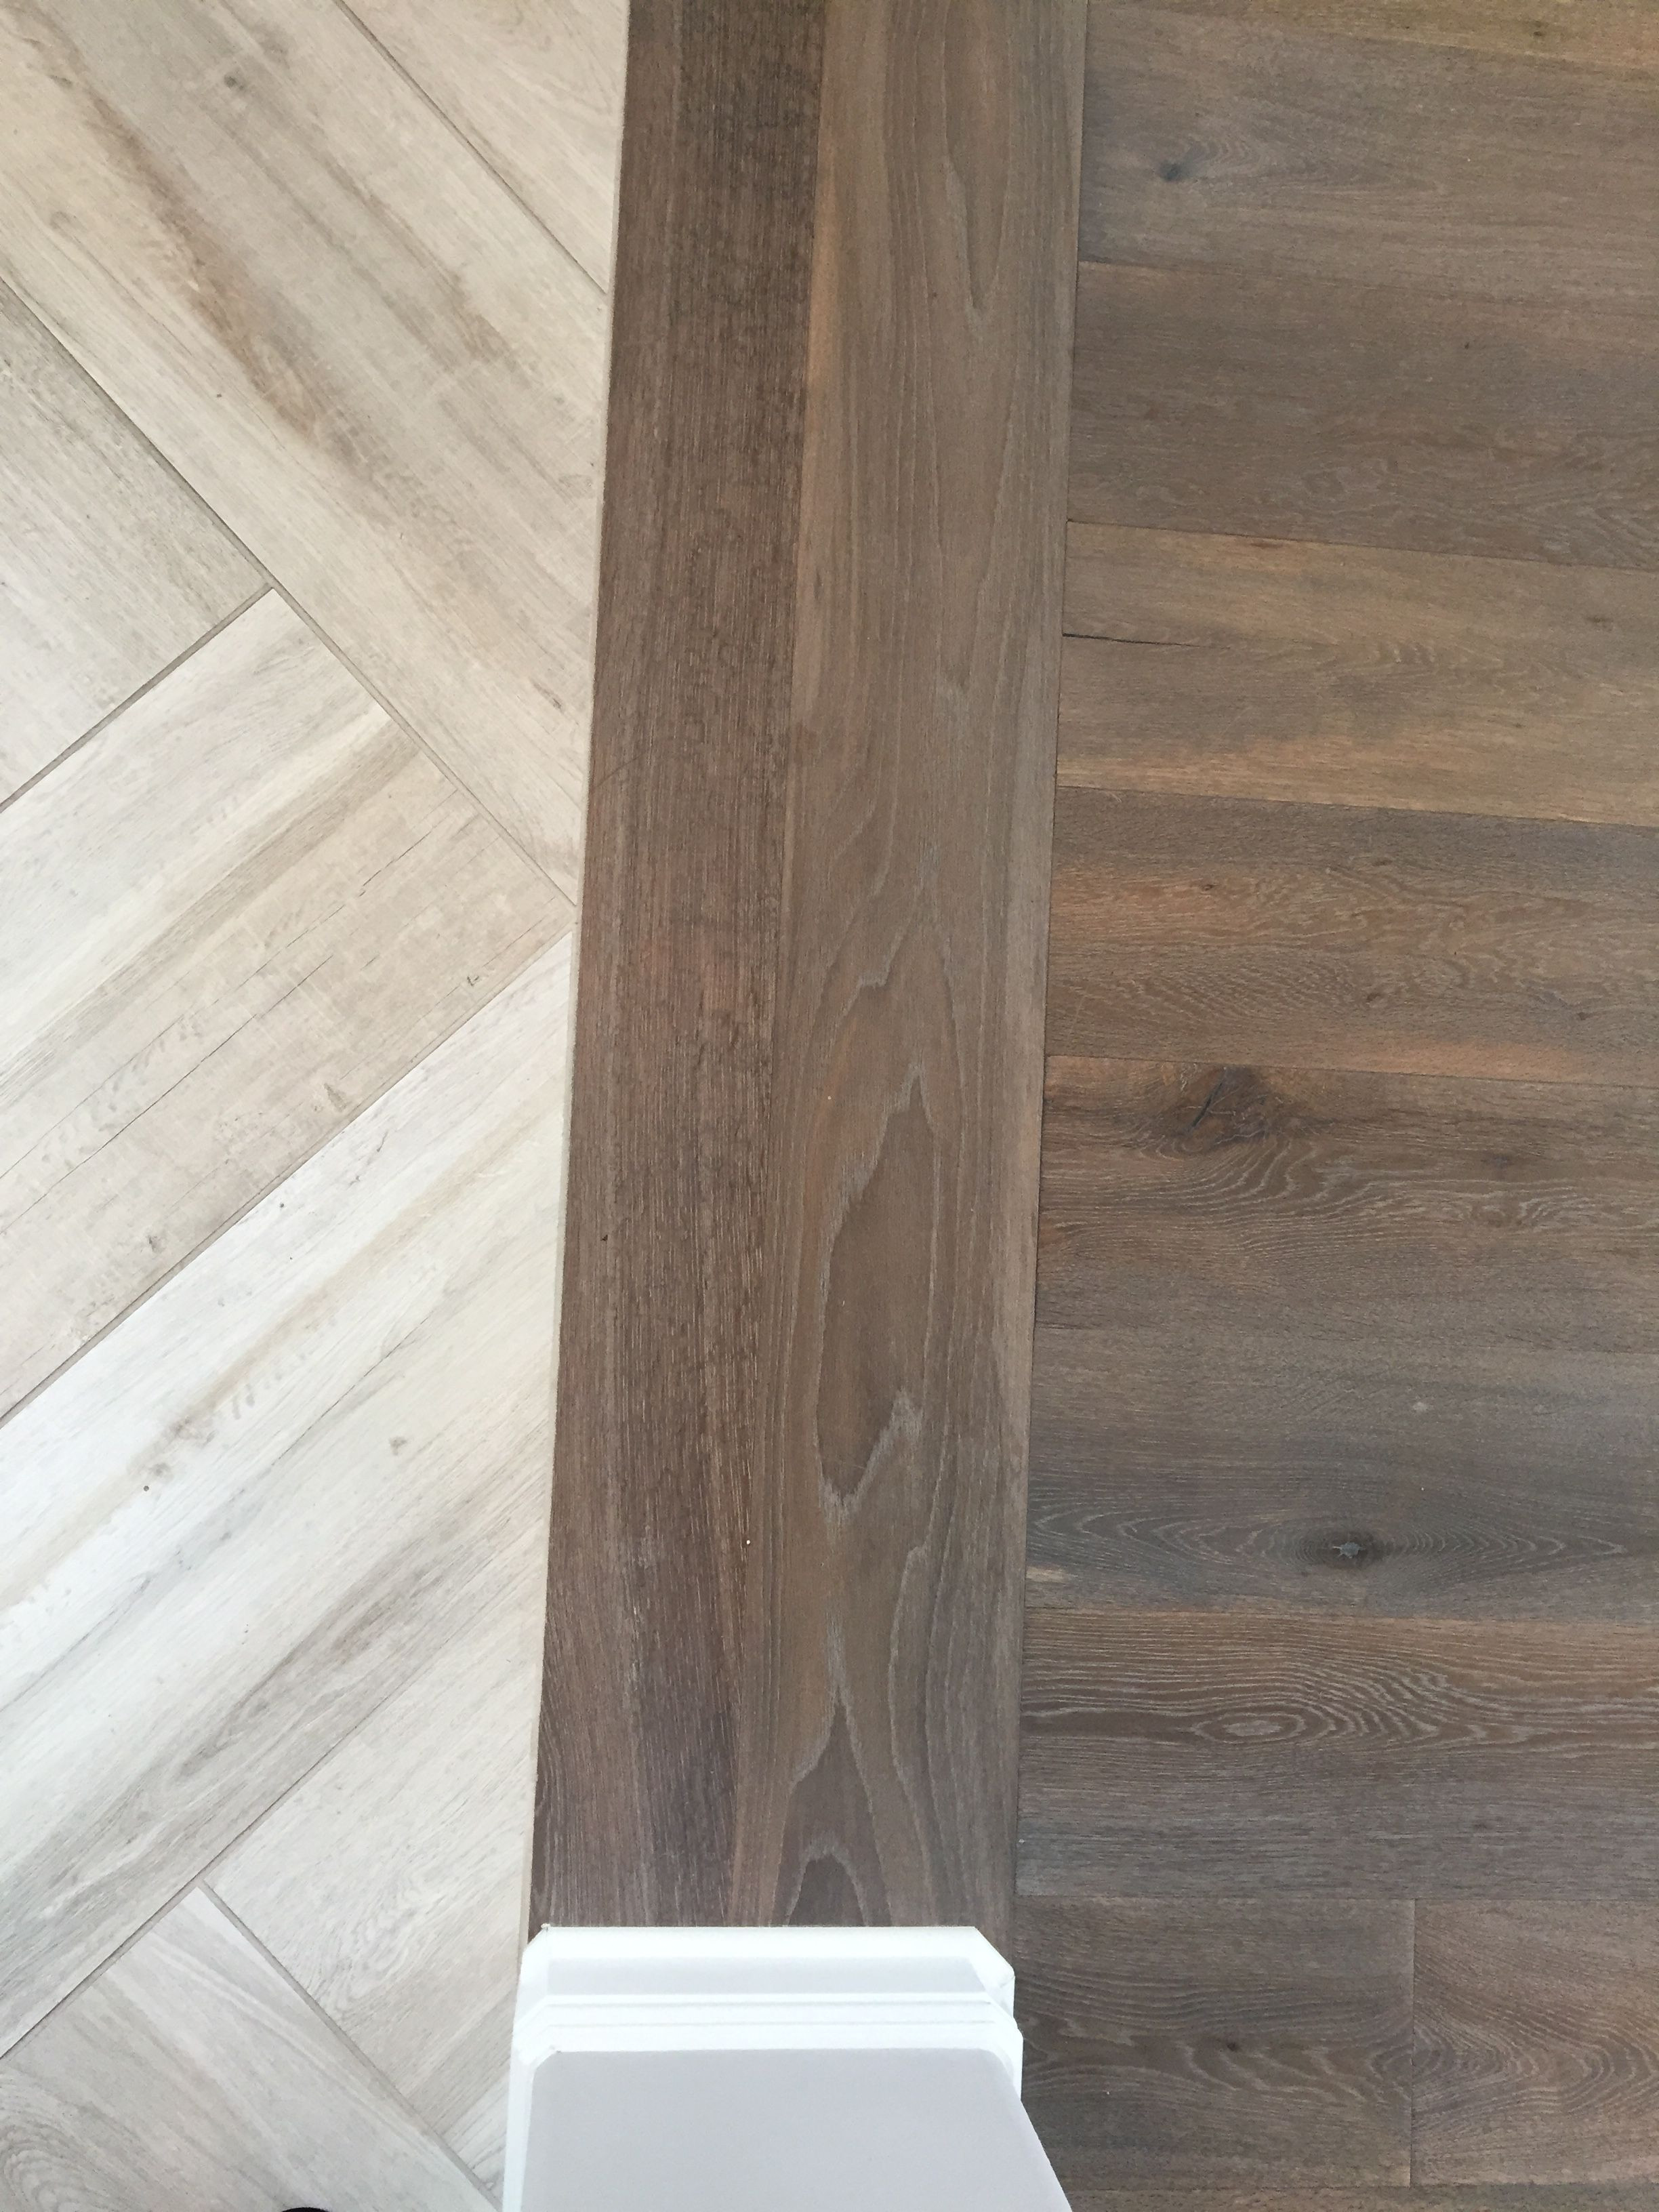 how to replace hardwood floor boards of floor transition laminate to herringbone tile pattern model pertaining to floor transition laminate to herringbone tile pattern herringbone tile pattern herringbone wood floor